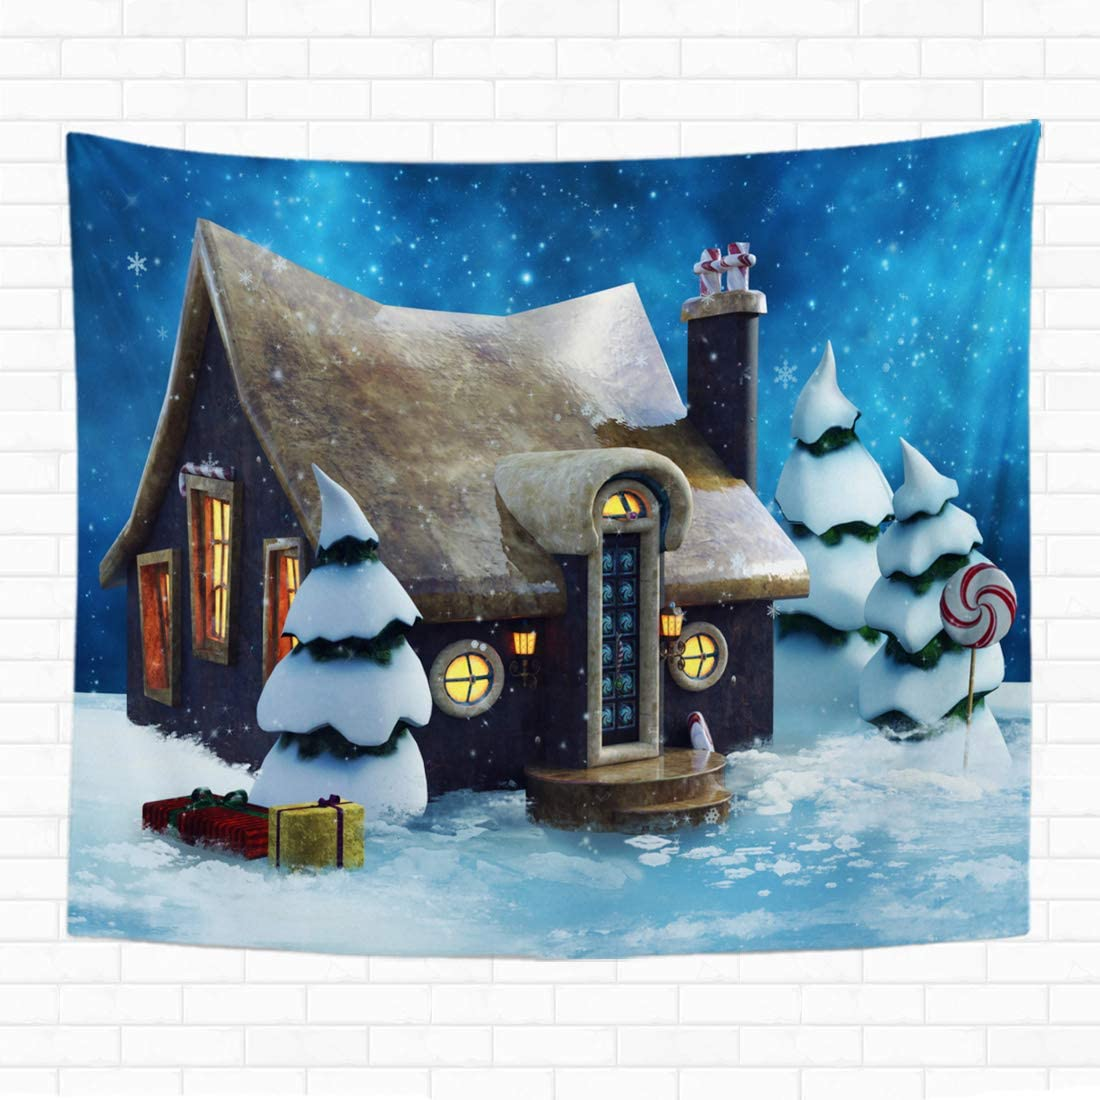 Topyee 60x80 Inch Tapestry Wall Hanging Fairytale Gingerbread Cottage with Trees Cake Castle Baked Bakery Home Decorative Tapestries Wall Blanket for Dorm Living Room Bedroom